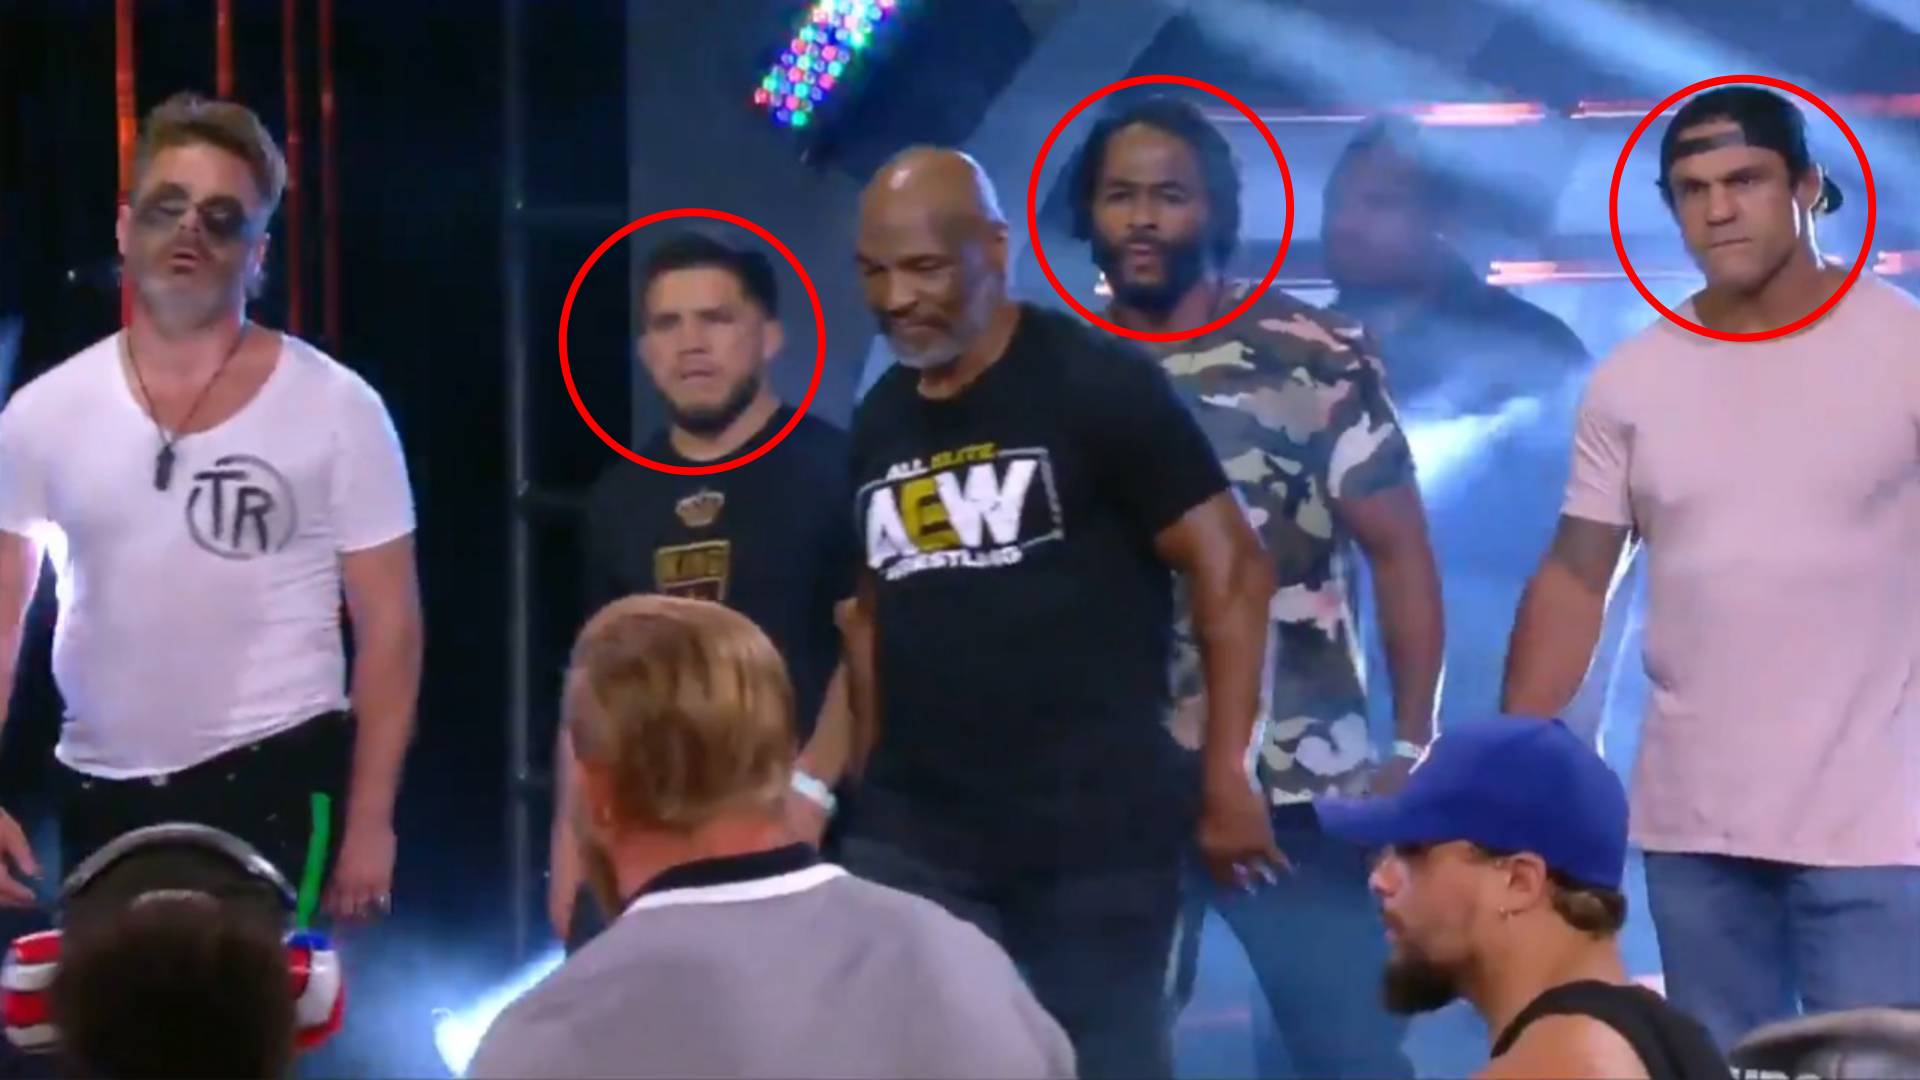 3 former UFC Champions show up with Mike Tyson to fight on AEW! - Mike Tyson